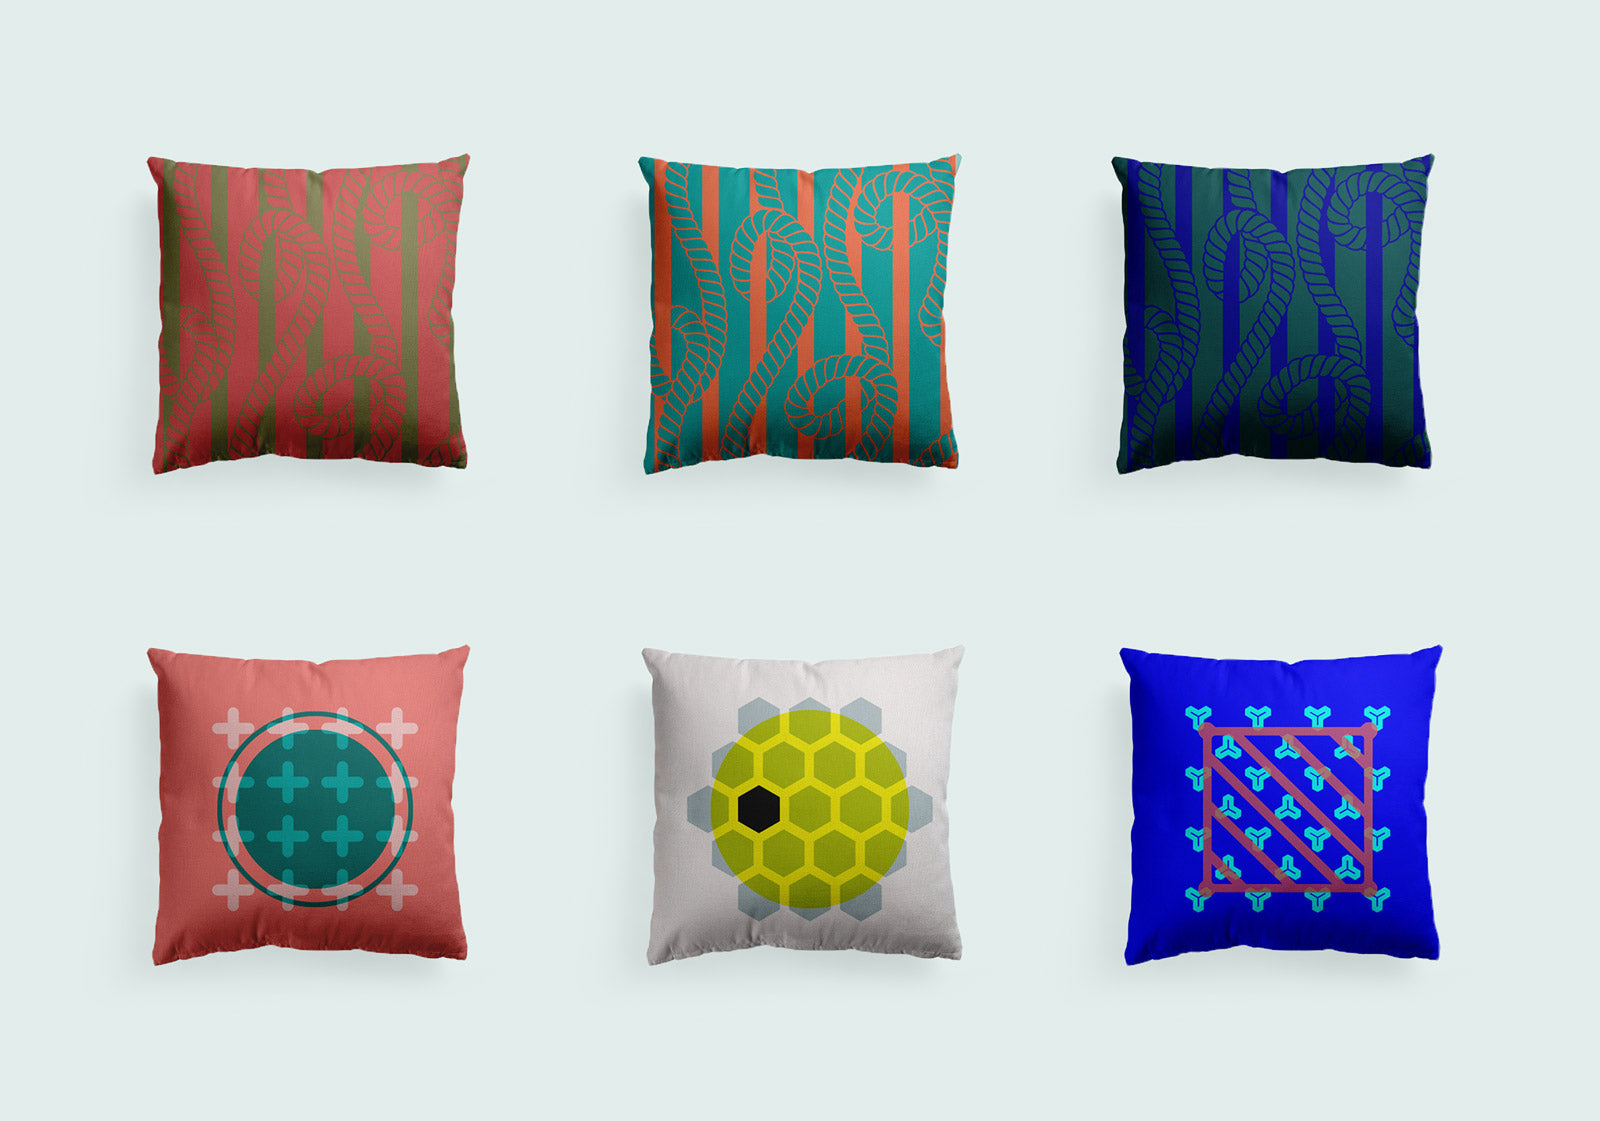 MAMIMU Pillow Cushions on Fy!